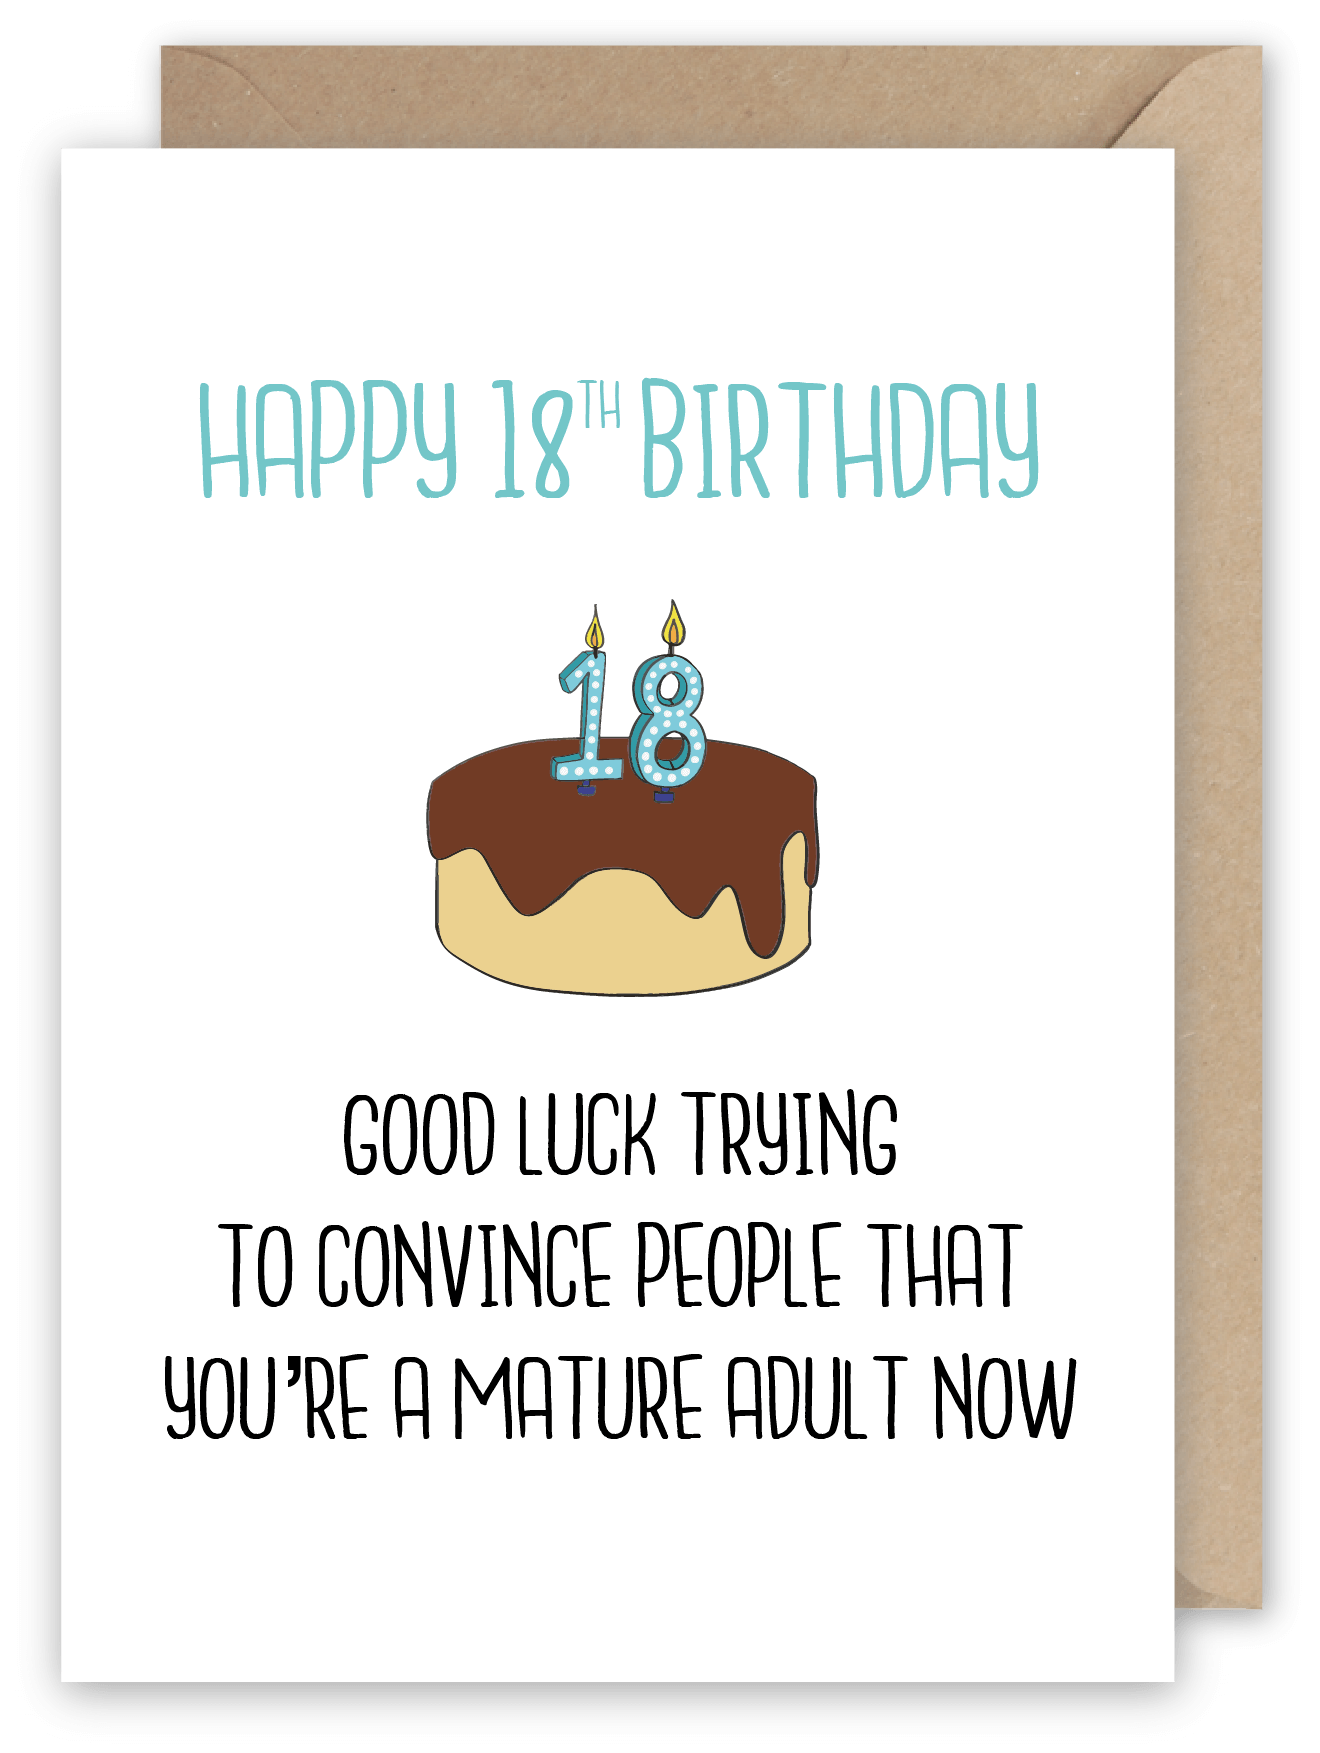 Good Luck Trying To Convince People 18th Birthday Greeting Card